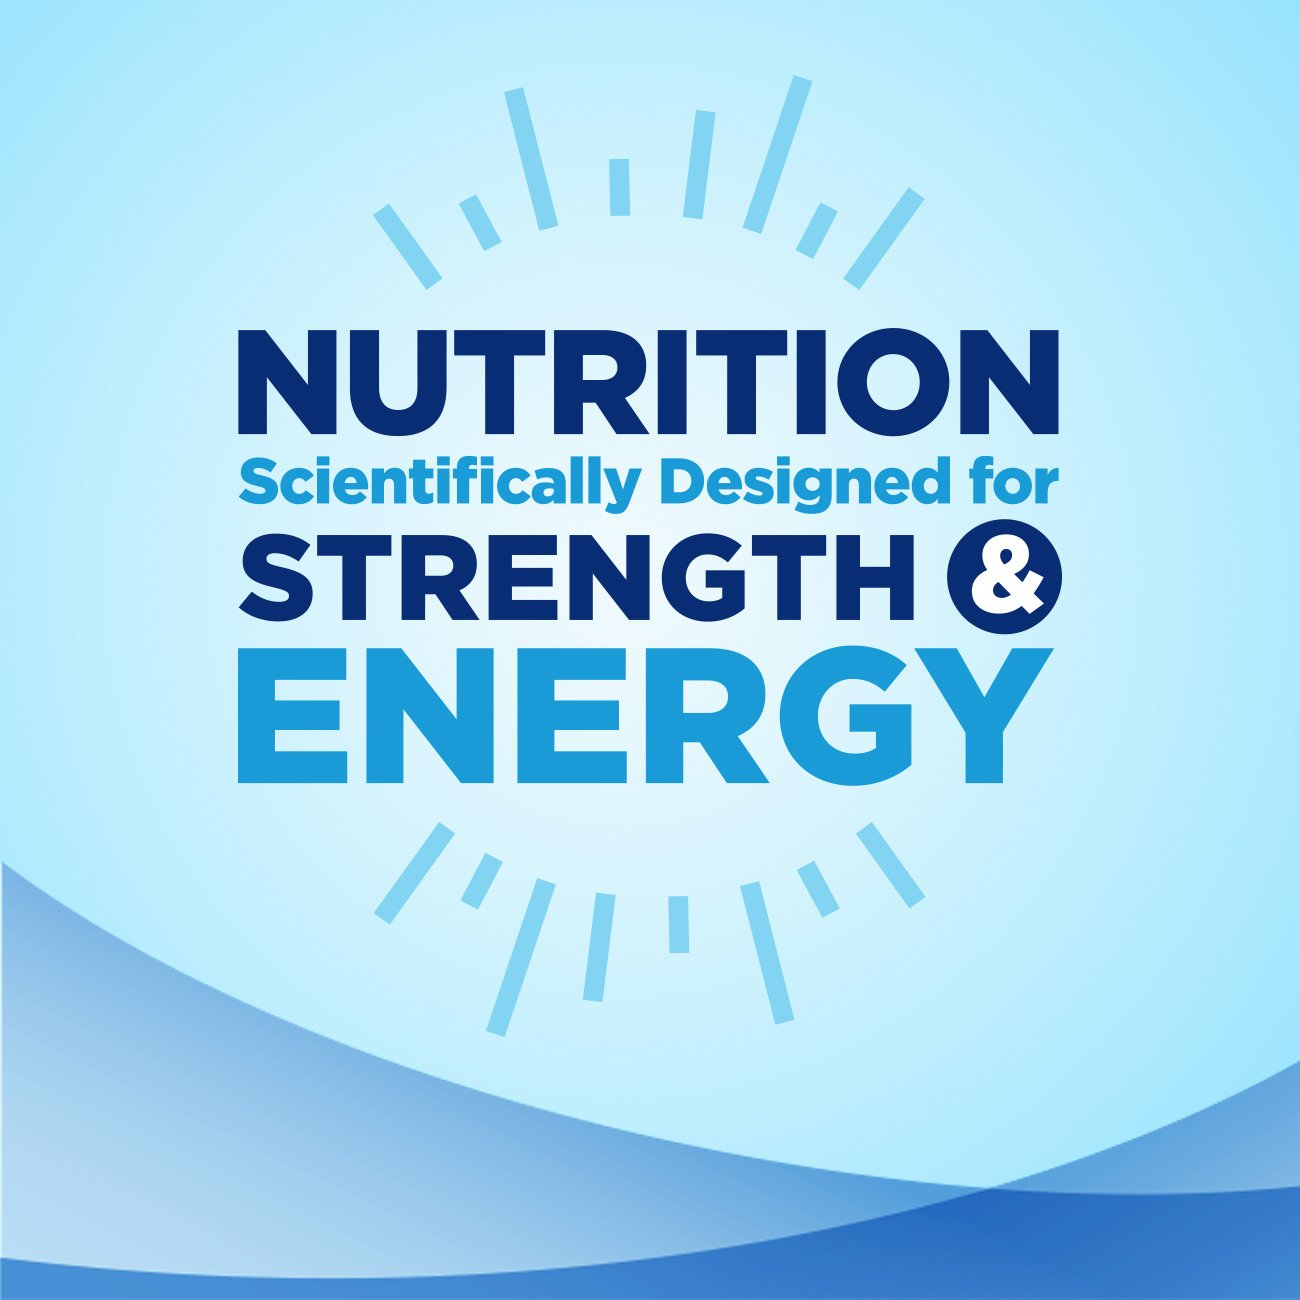 Ensure Original Nutrition Powder with 8 grams of protein, Meal Replacement, Vanilla, 6 count by Ensure (Image #2)